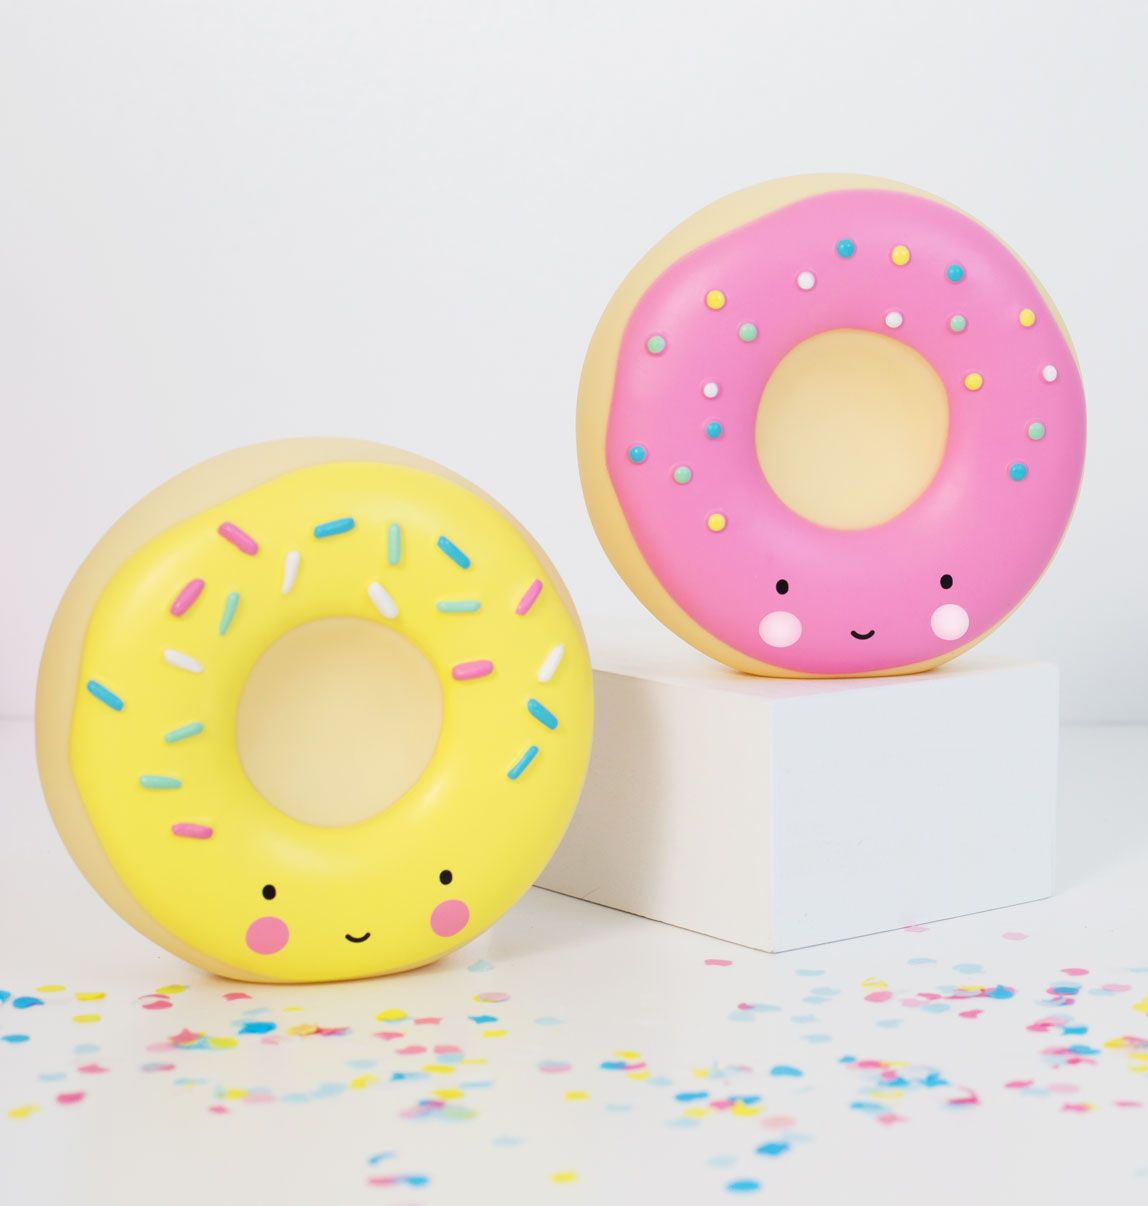 moneyboxe-donut-yellow-pink A Little Lovely Company